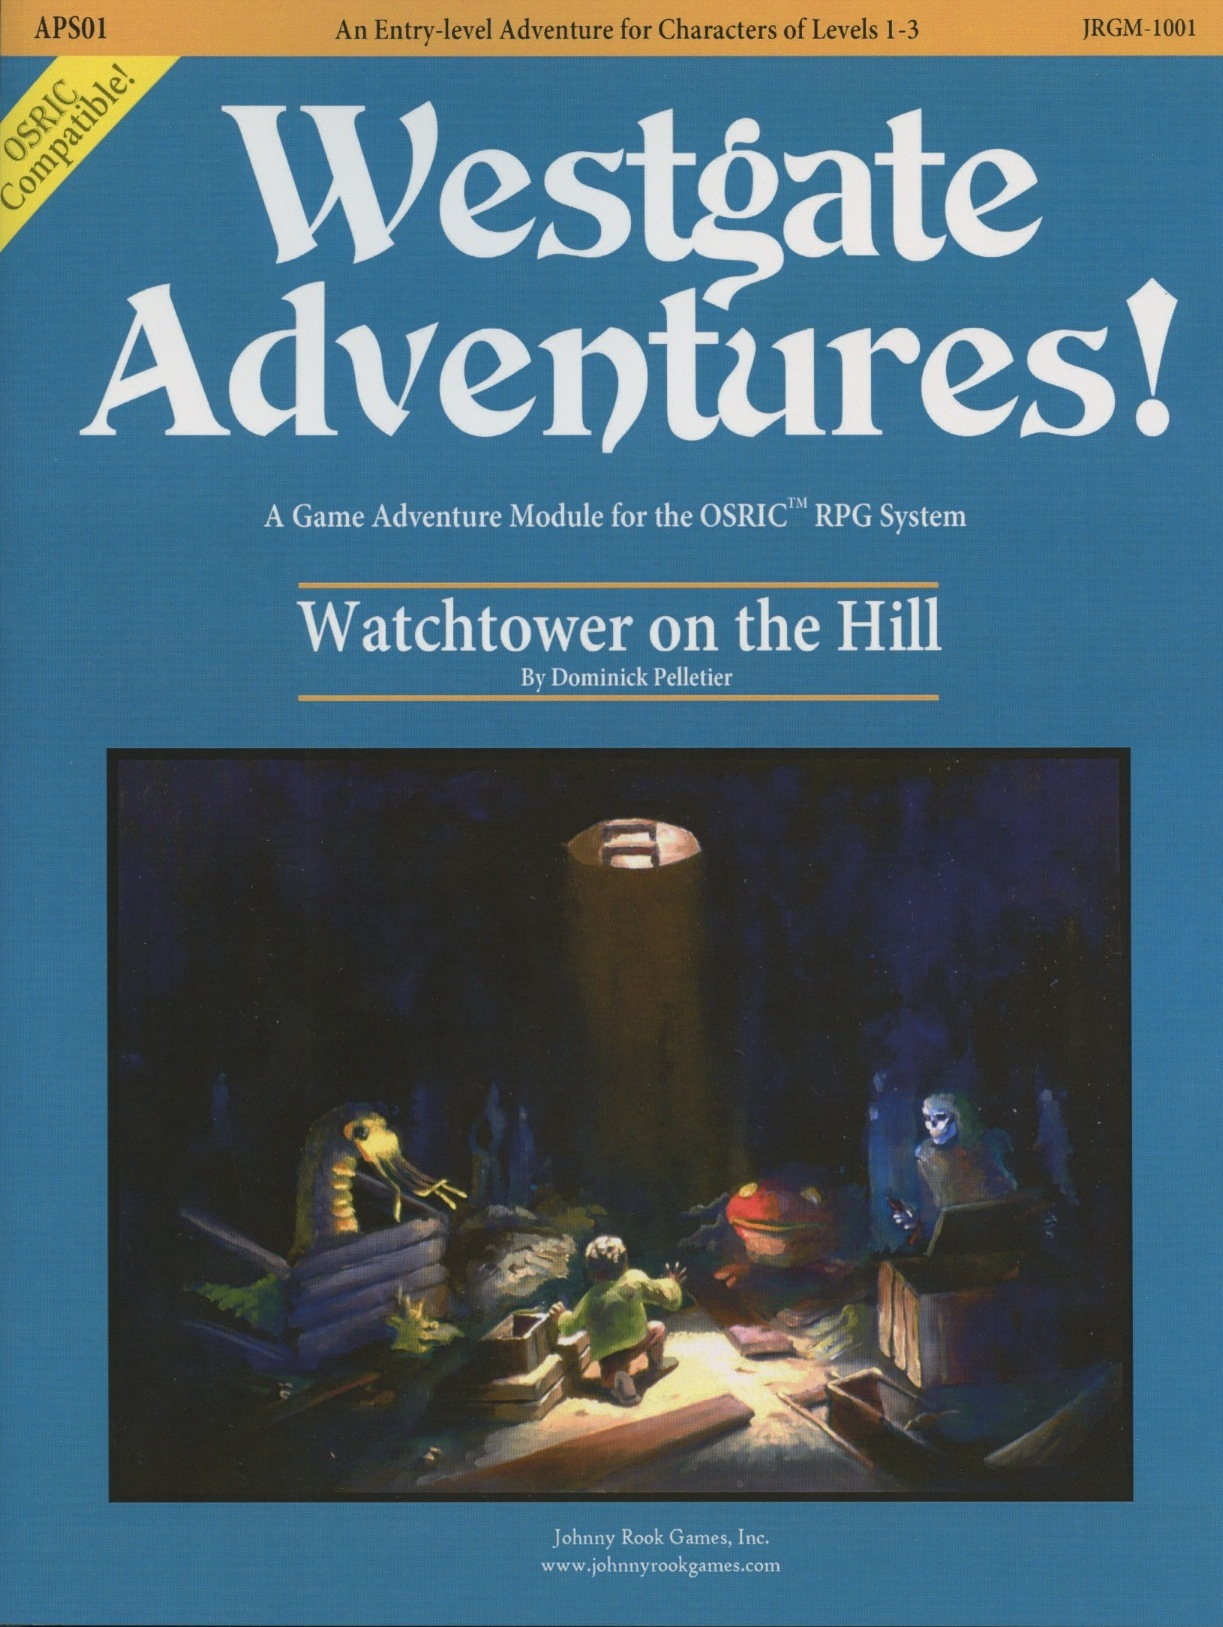 Cover of APS01 Watchtower on the Hill